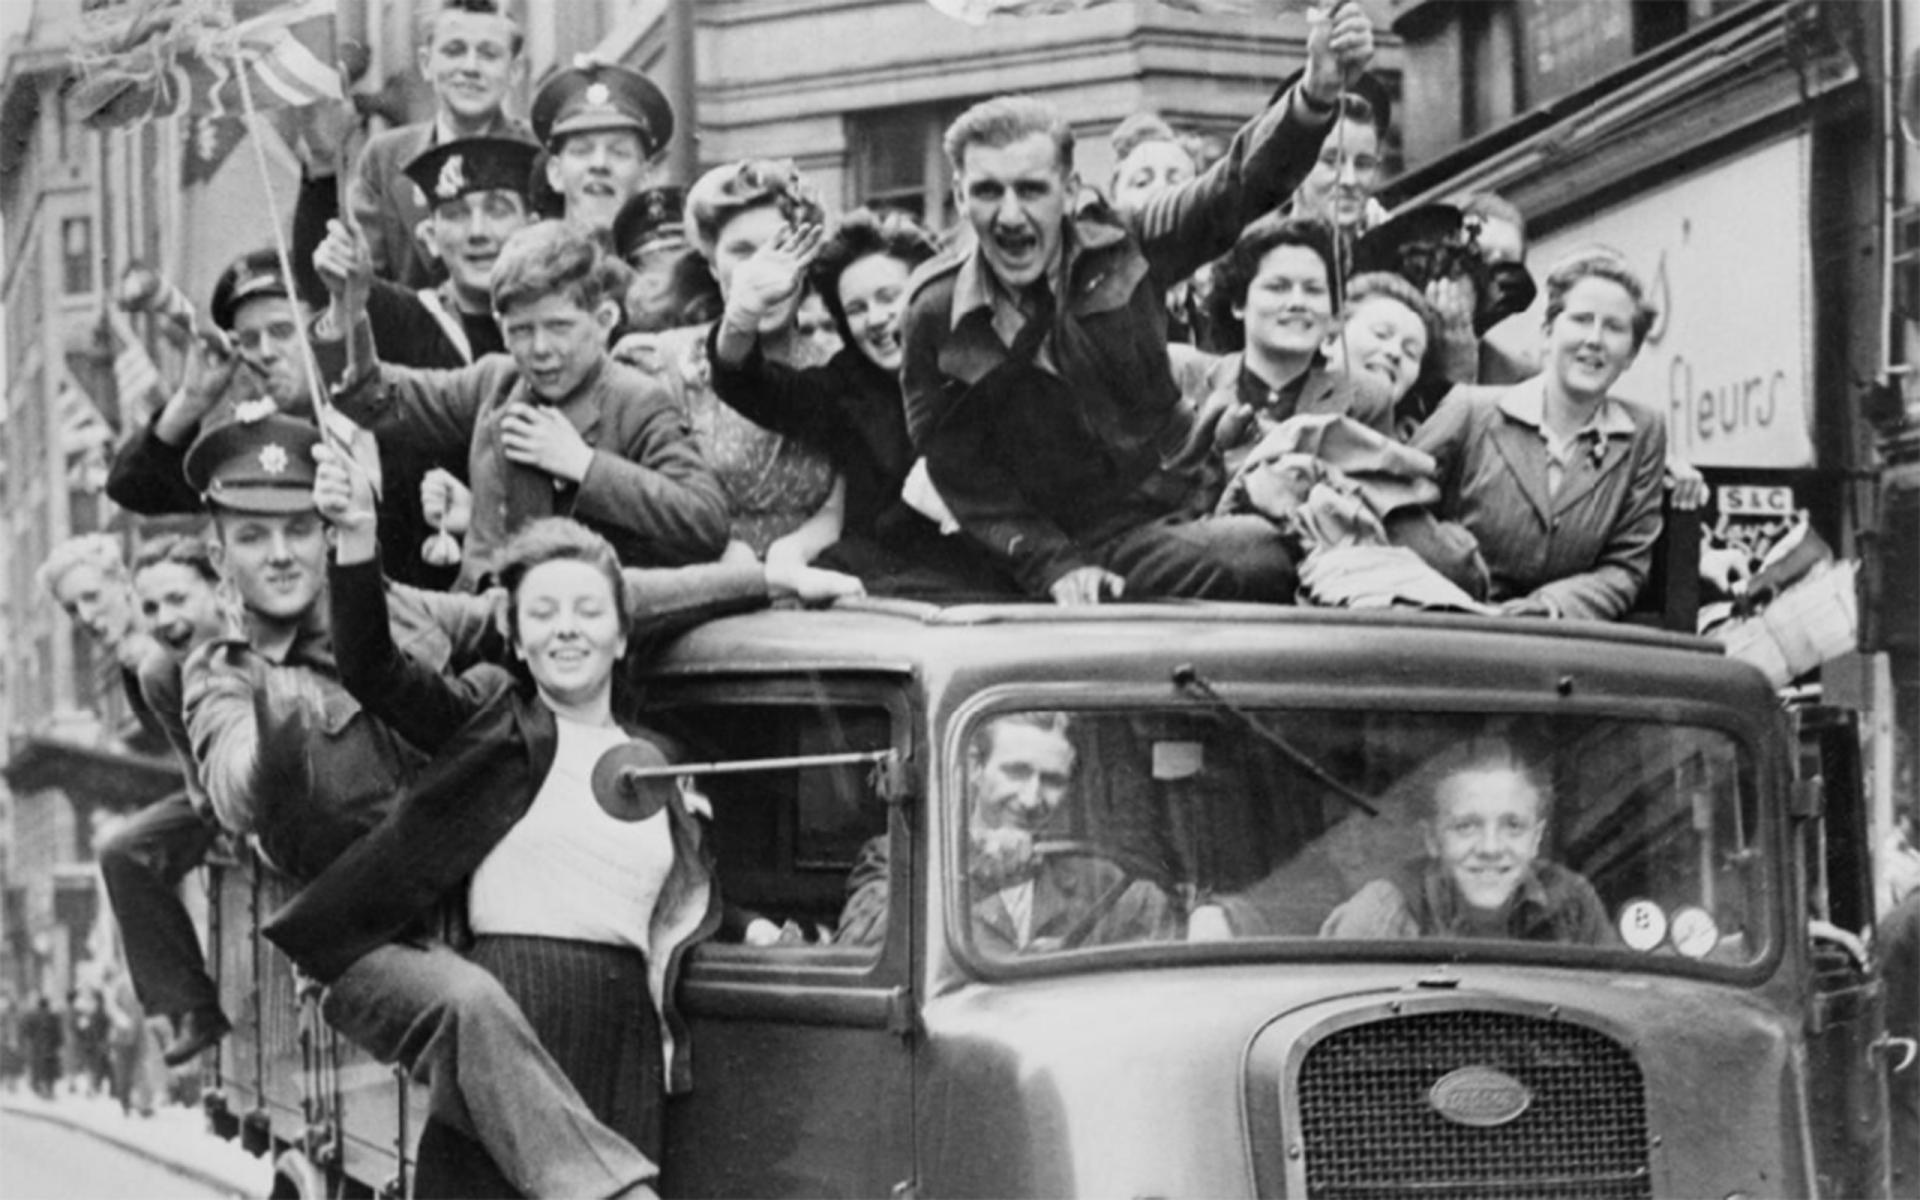 VE Day celebrations in London on 8 May 1945